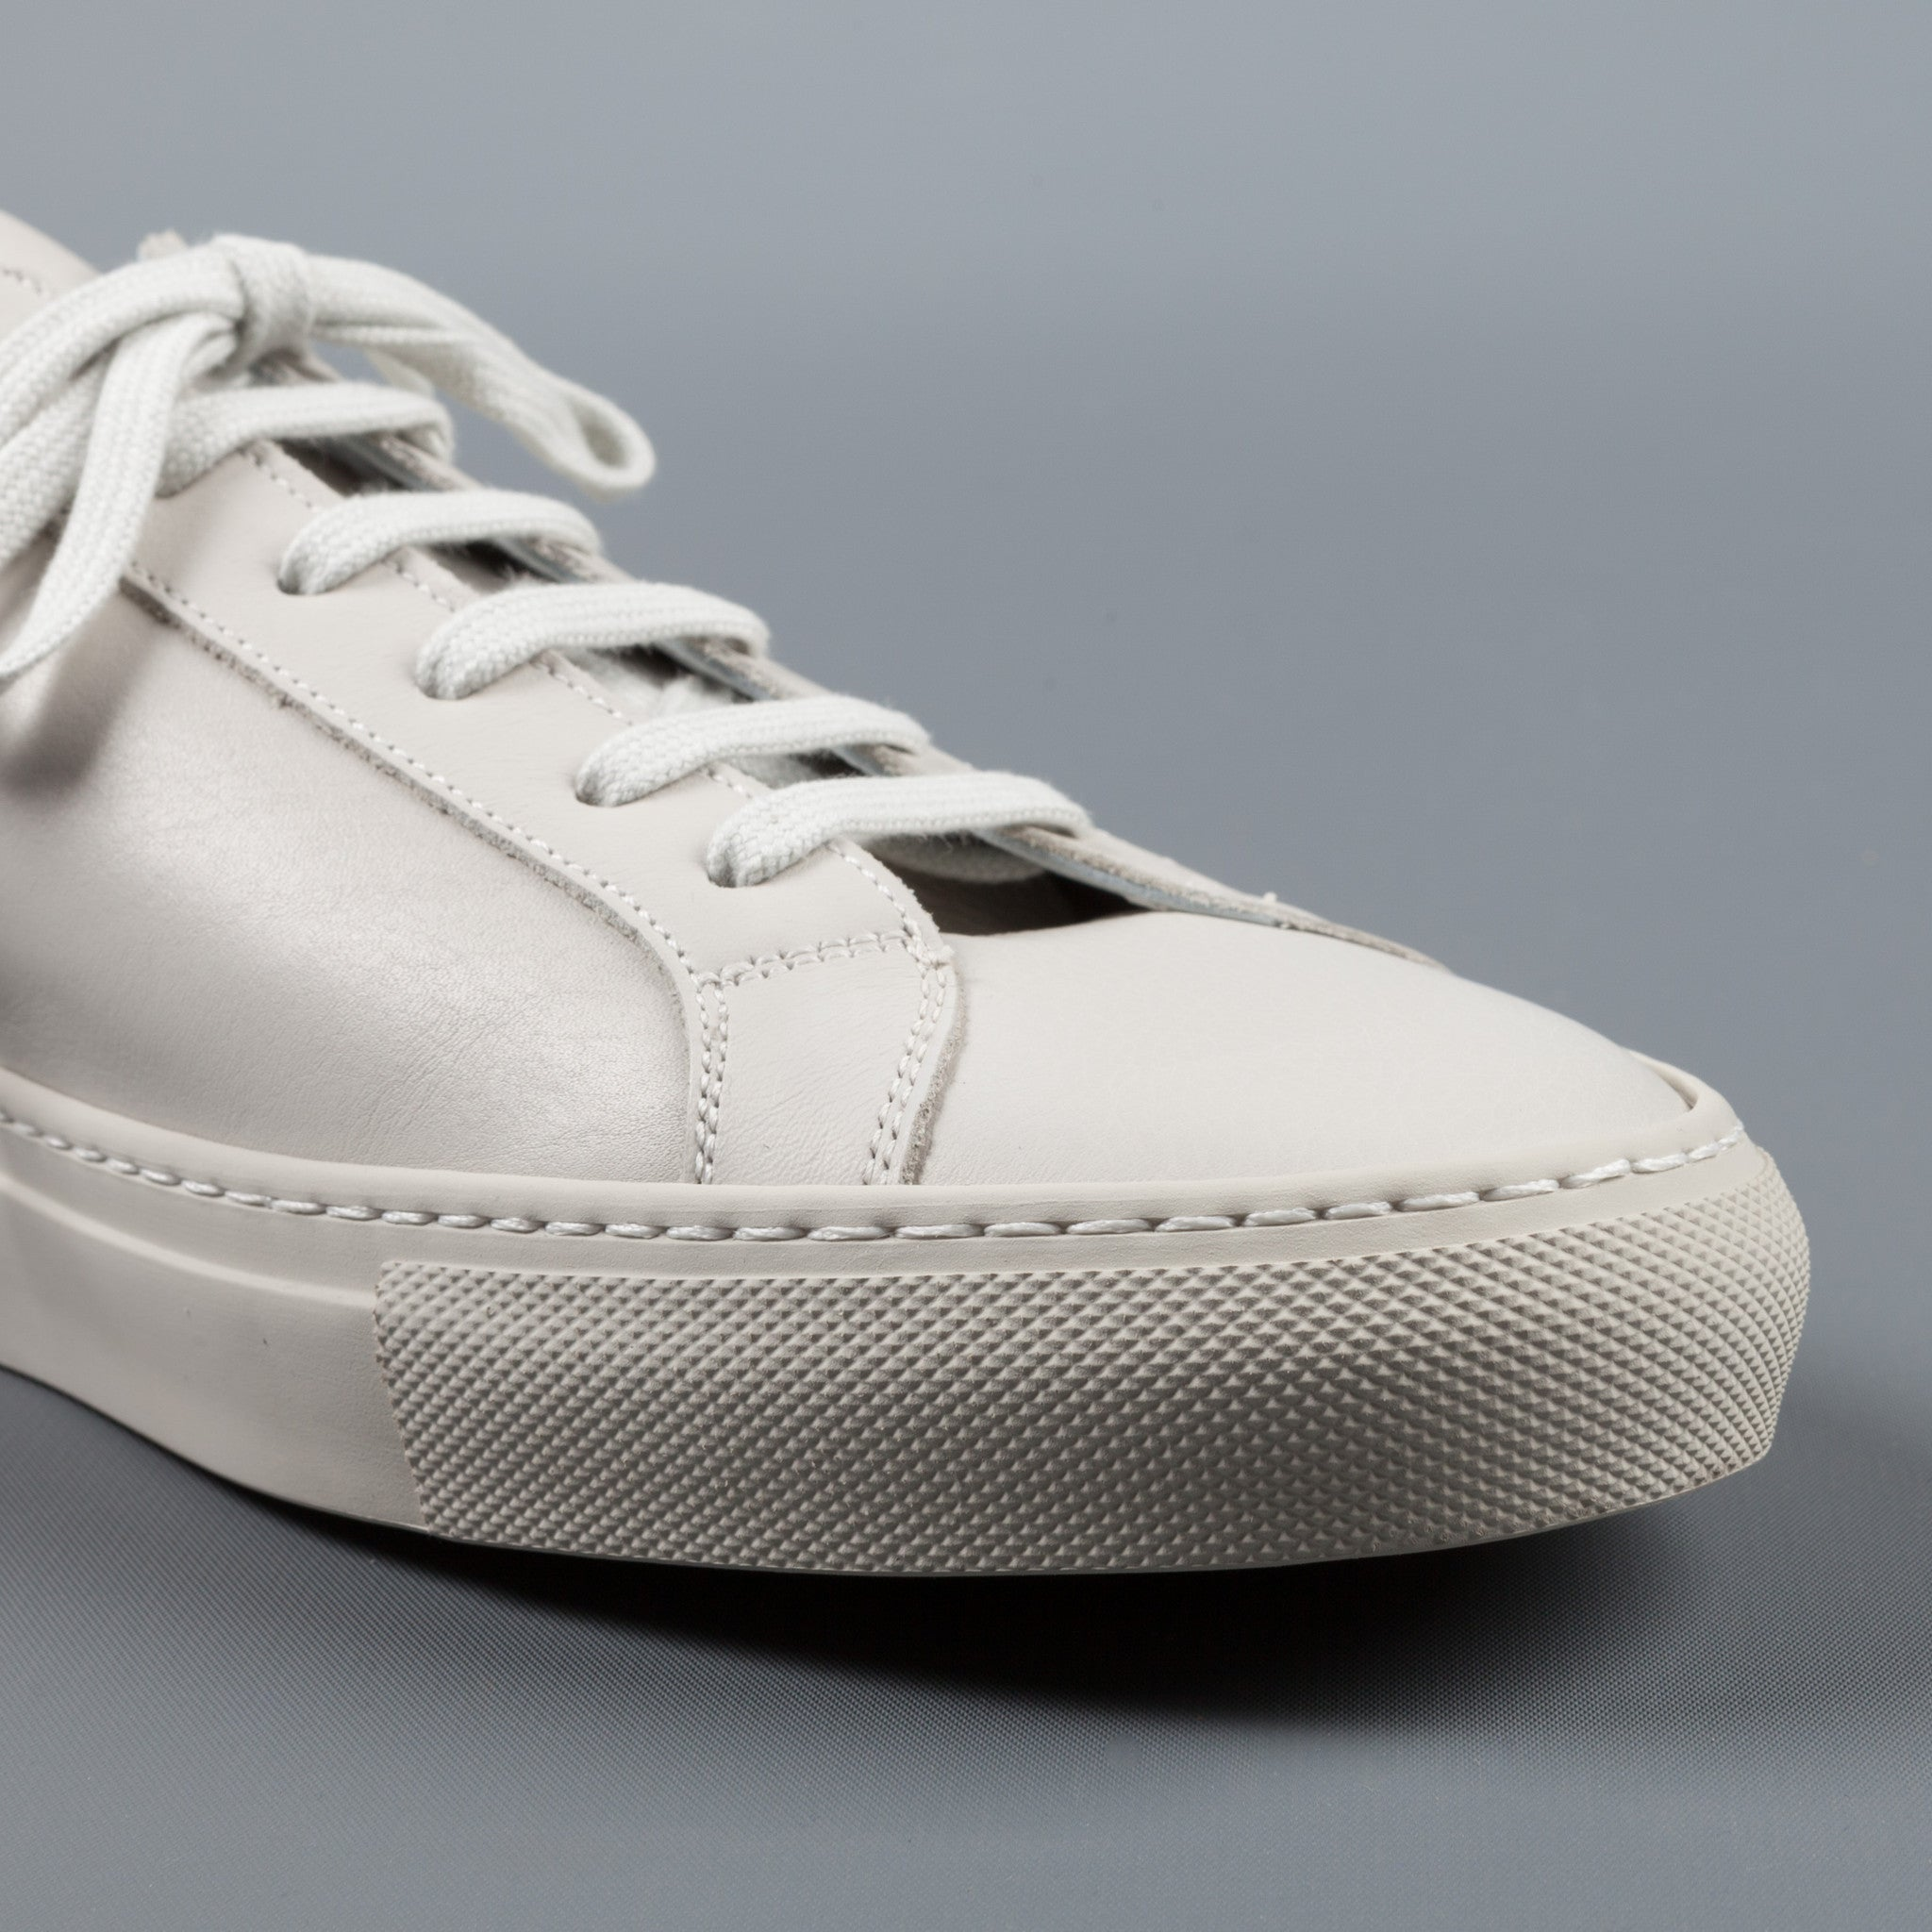 common projects 1528 original achilles low off white frans boone store. Black Bedroom Furniture Sets. Home Design Ideas